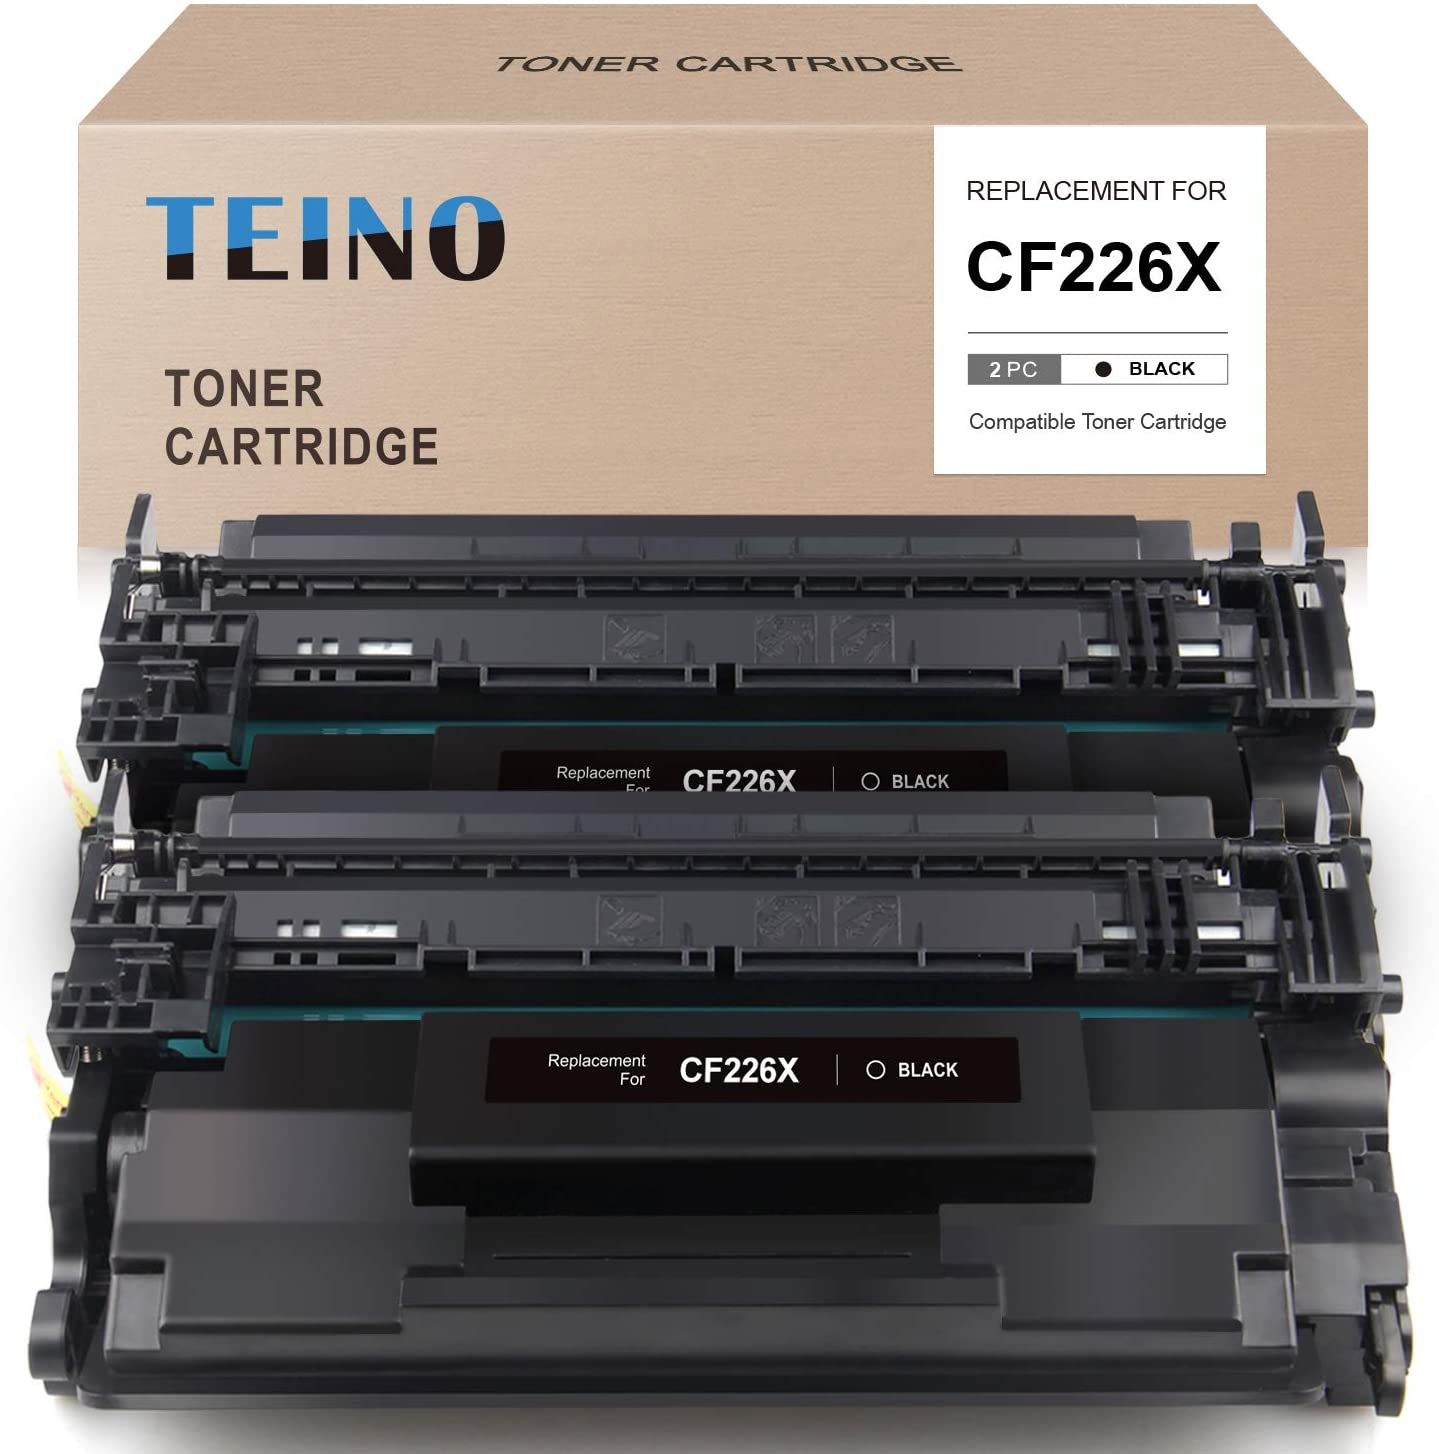 TEINO Compatible Toner Cartridge Replacement for HP 26X CF226X 26A CF226A use with HP Laserjet Pro MFP M426fdw M426fdn M426dw Laserjet Pro M402dw M402dne M402d M402d M402n (Black, 2-Pack)